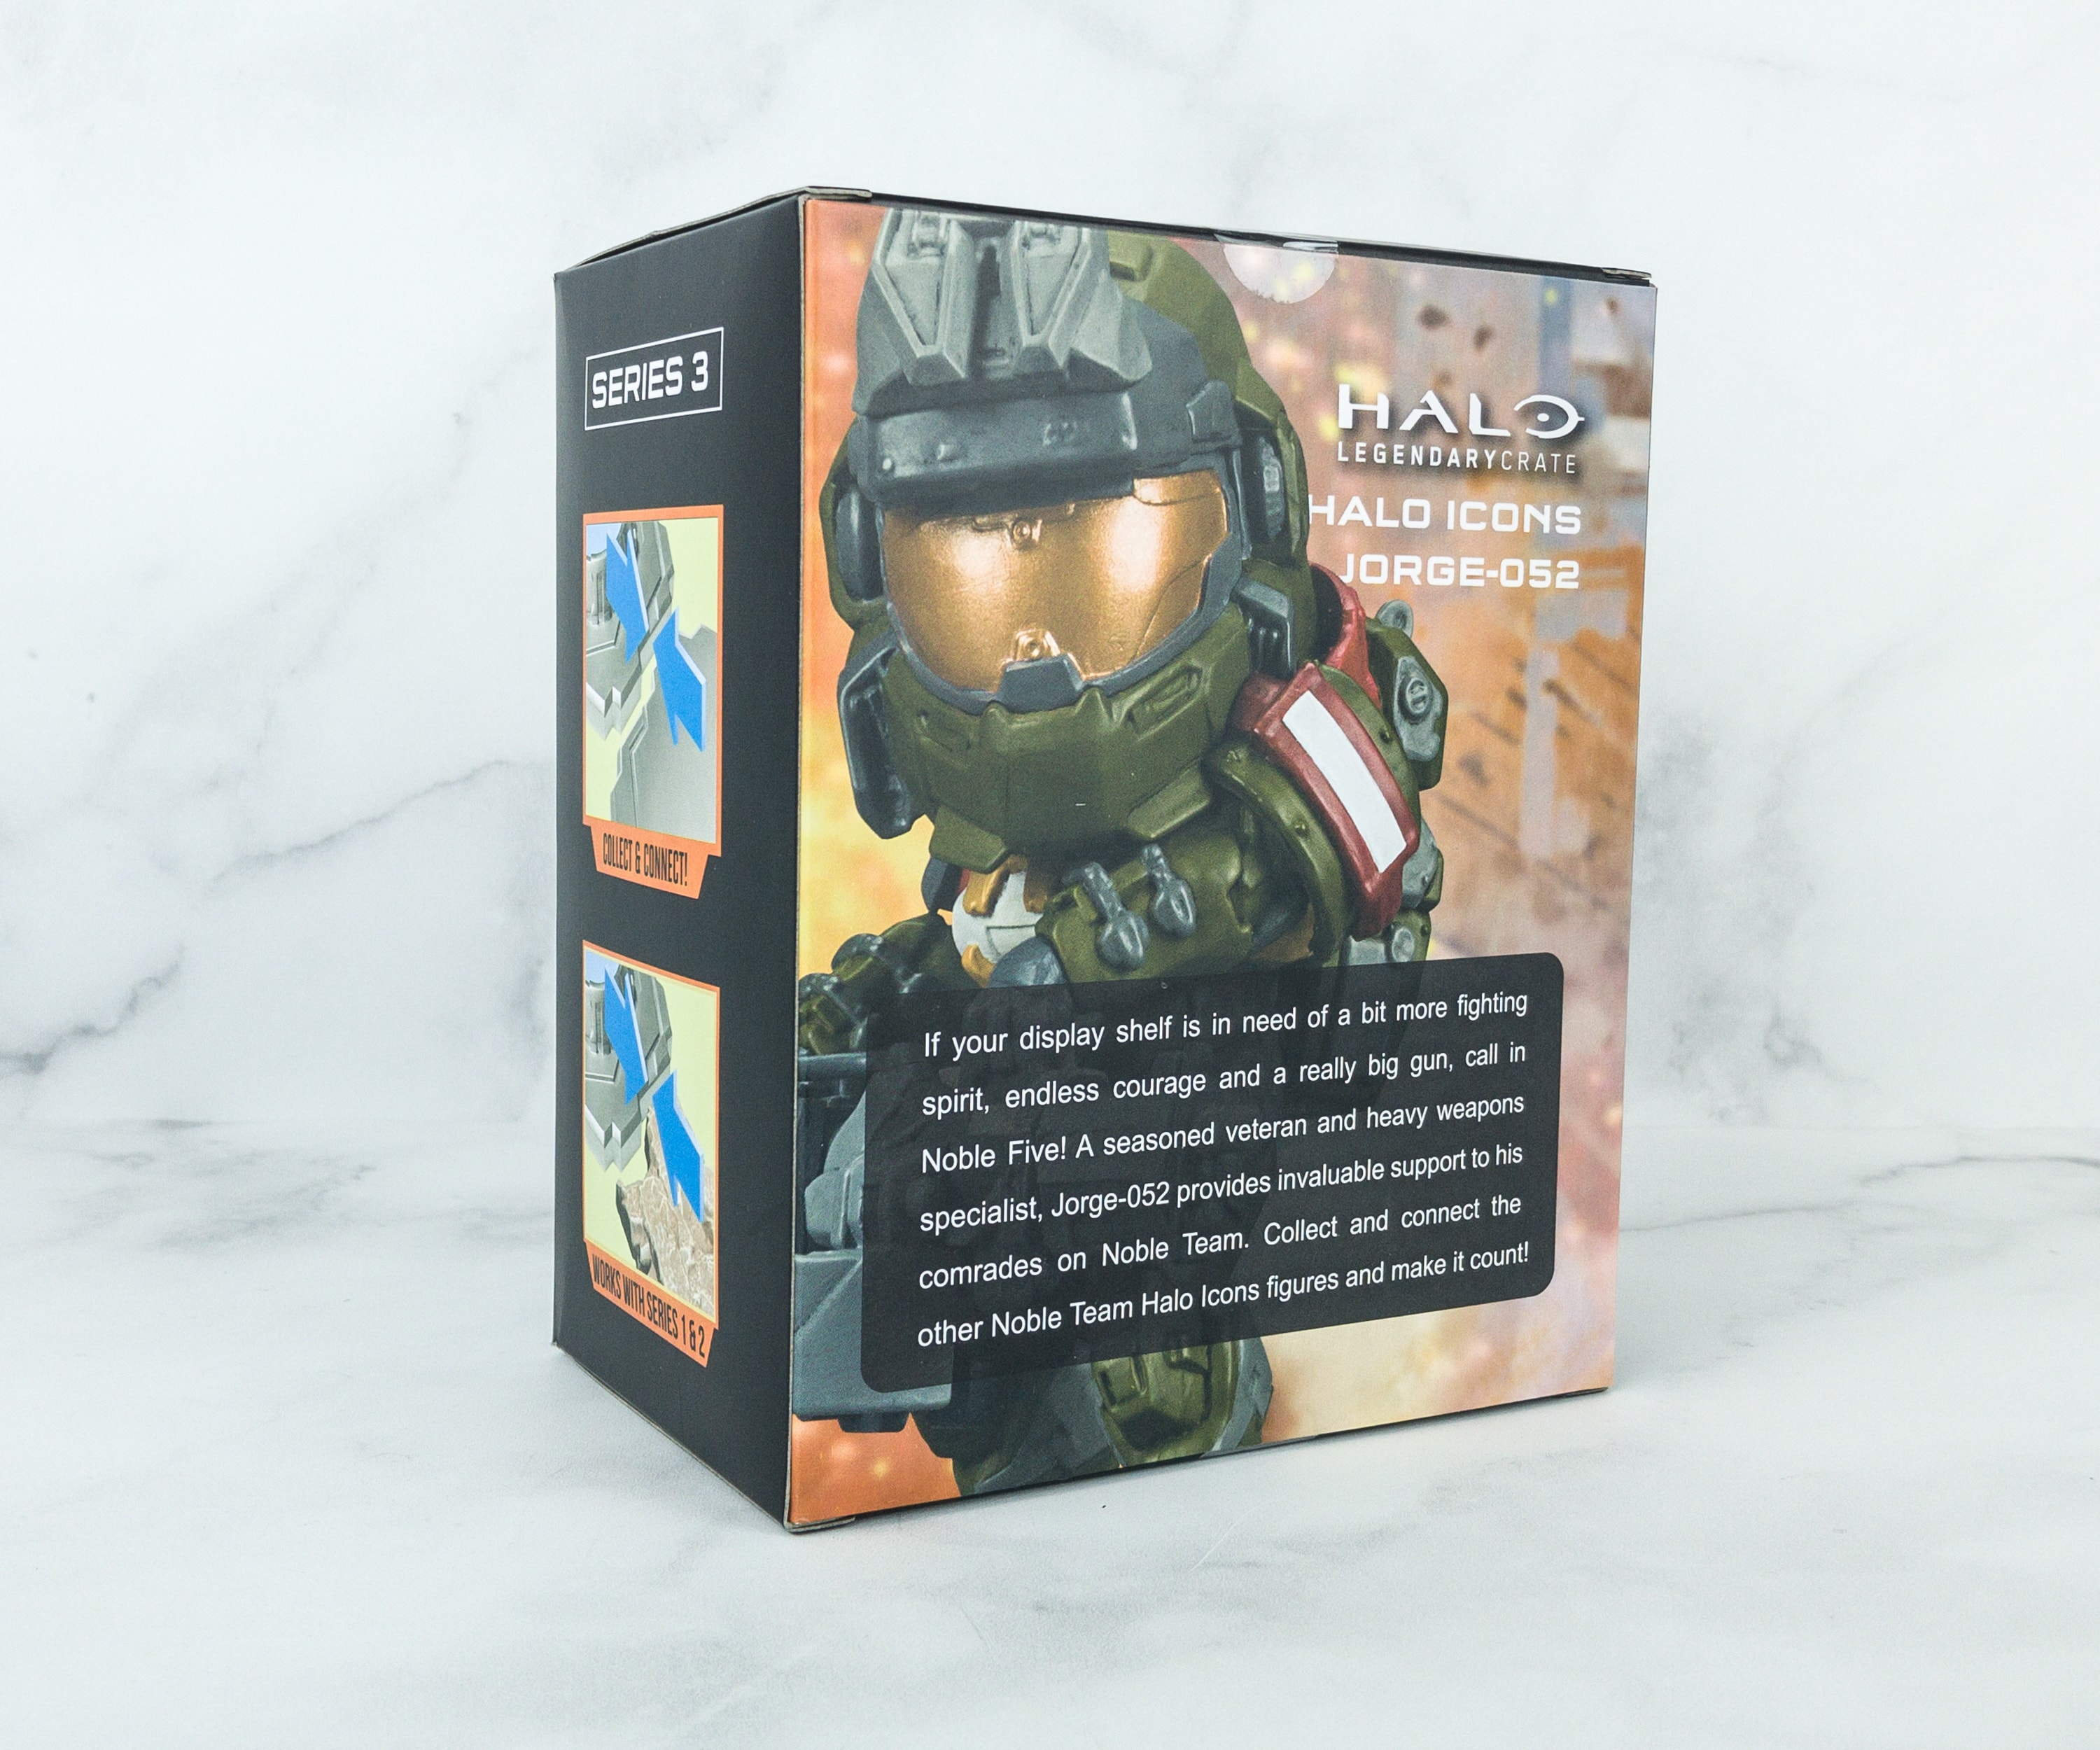 Halo Legendary Crate December 2018 Subscription Box Review +